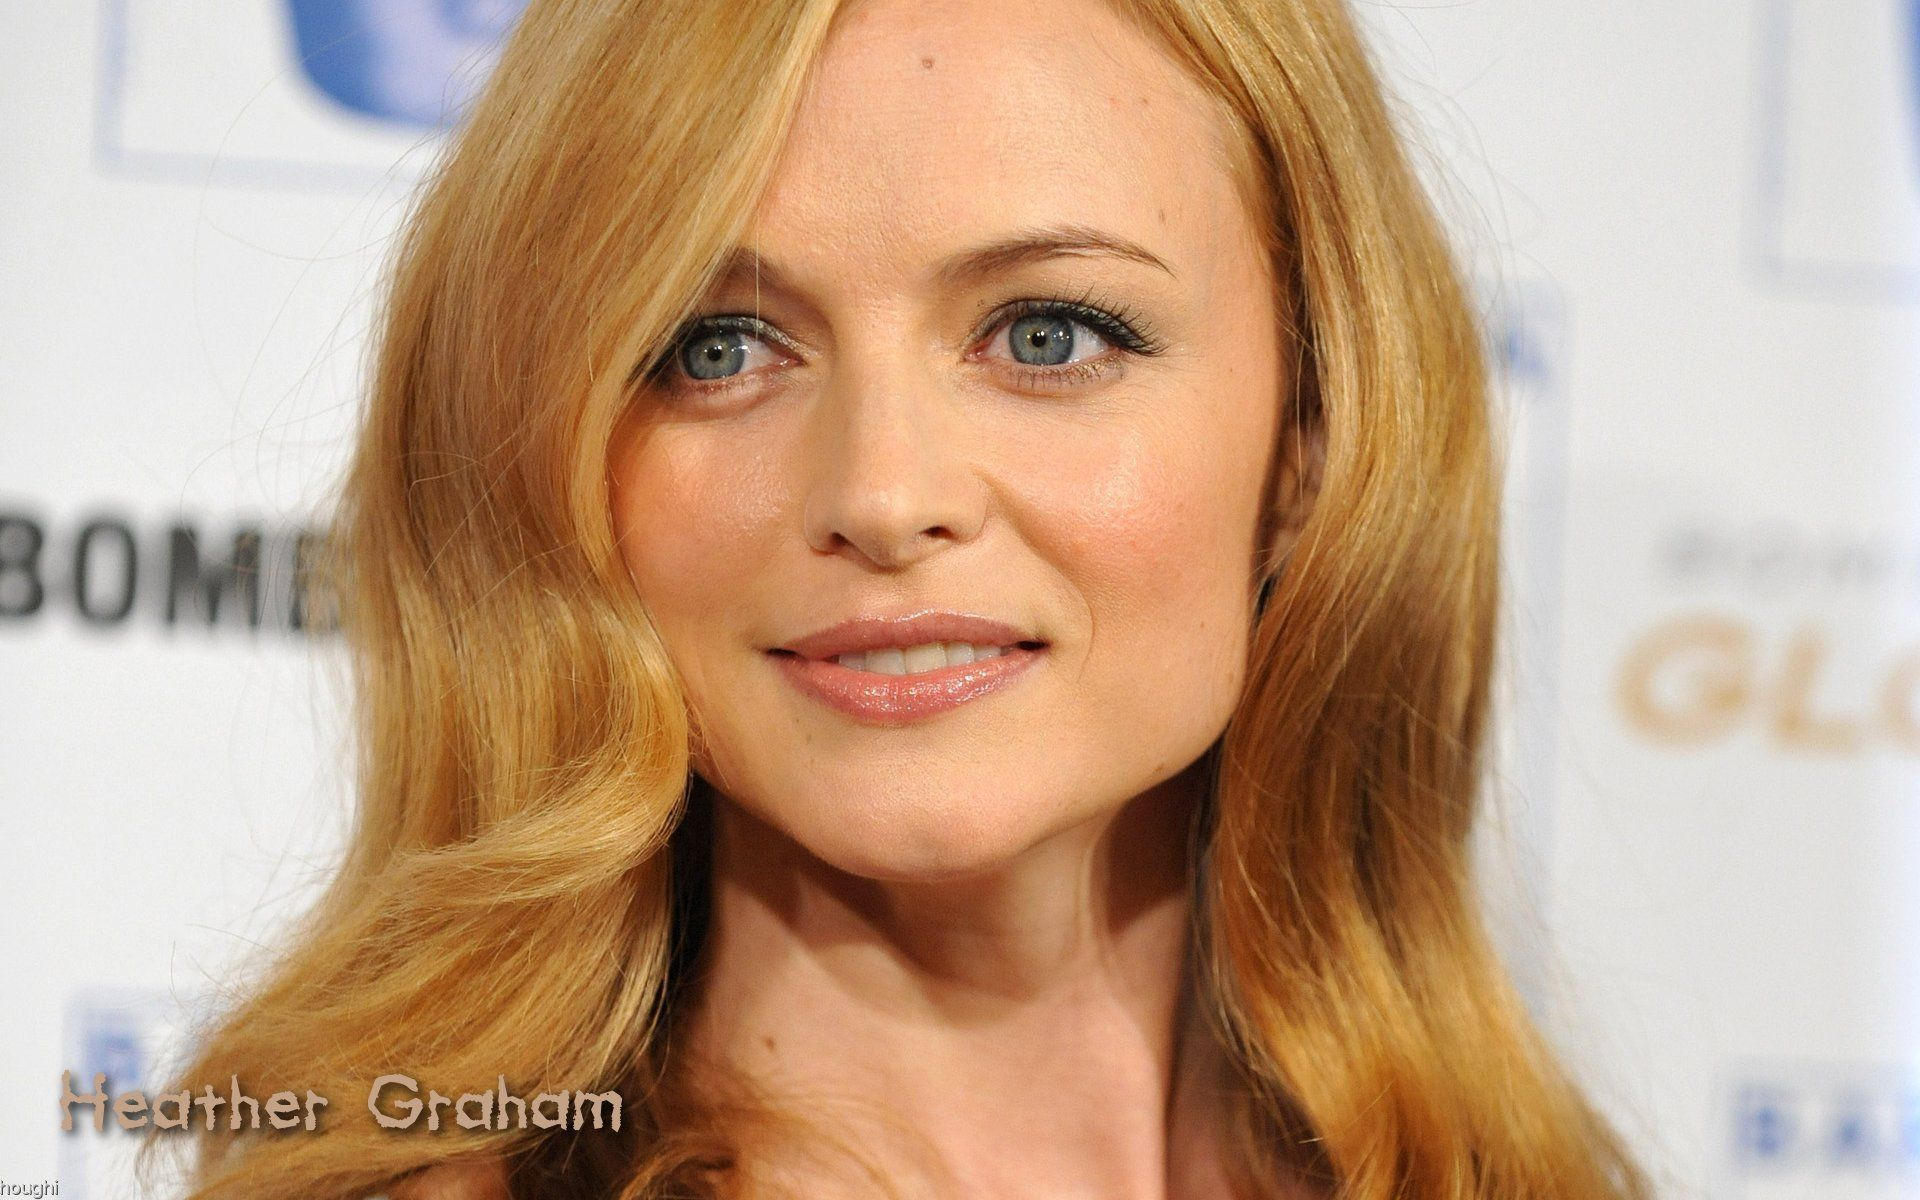 Heather Graham Full hd wallpapers